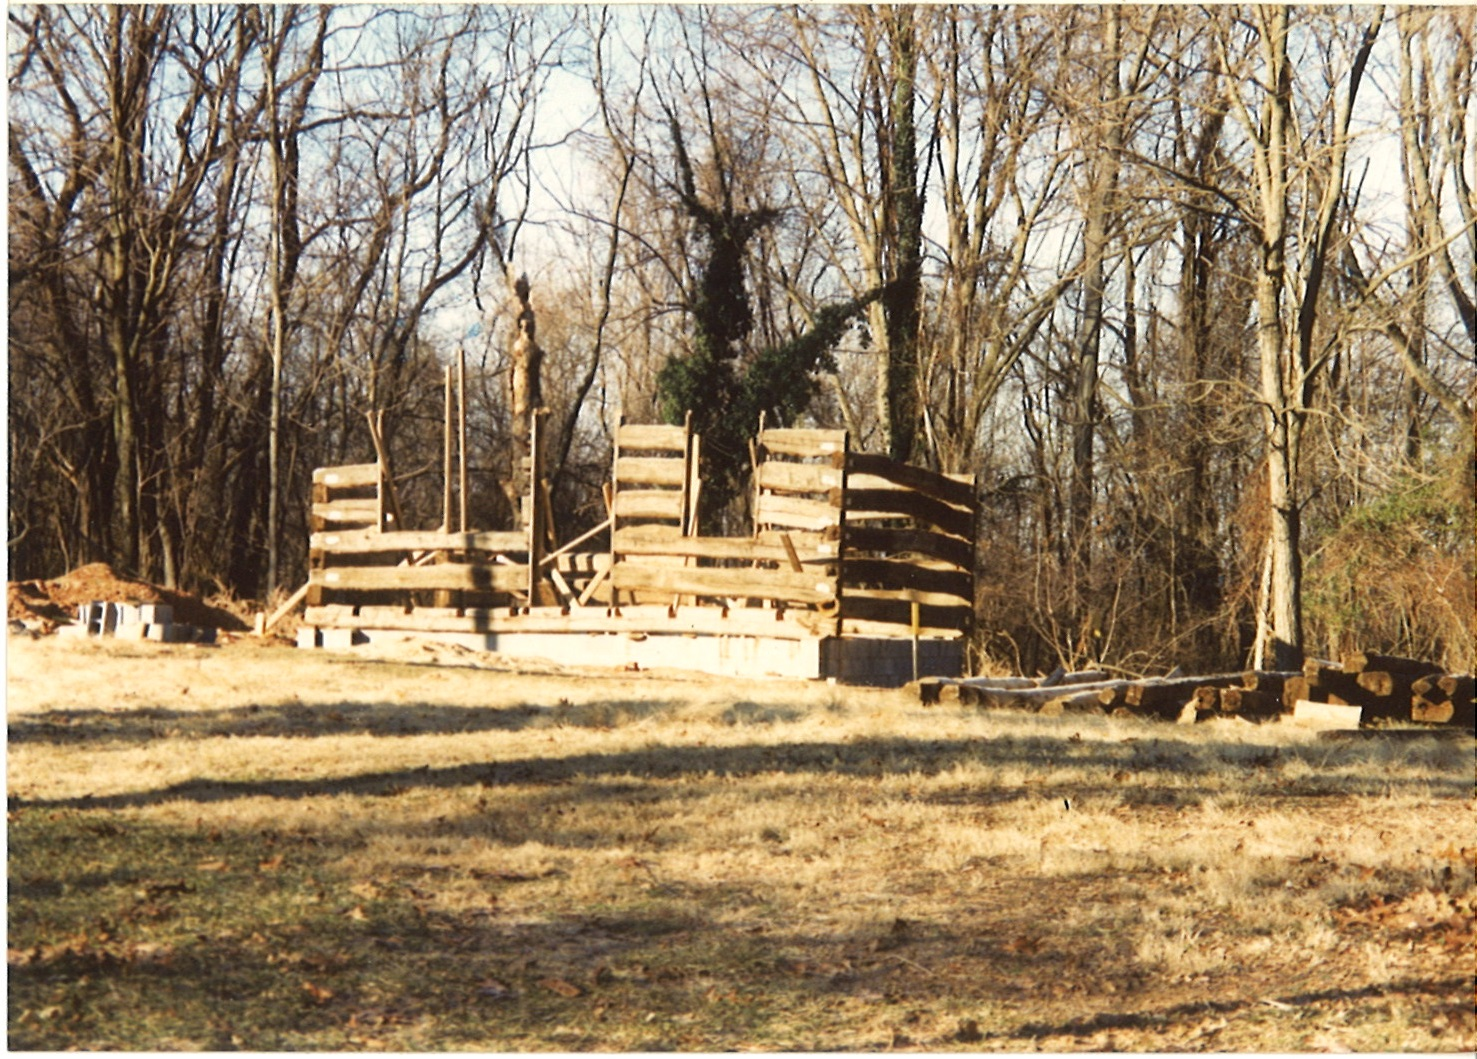 The Maryland Park Service trucked the Grusendorf Log Cabin two miles down the road from its original location to Seneca Creek State Park, then reassembled it.